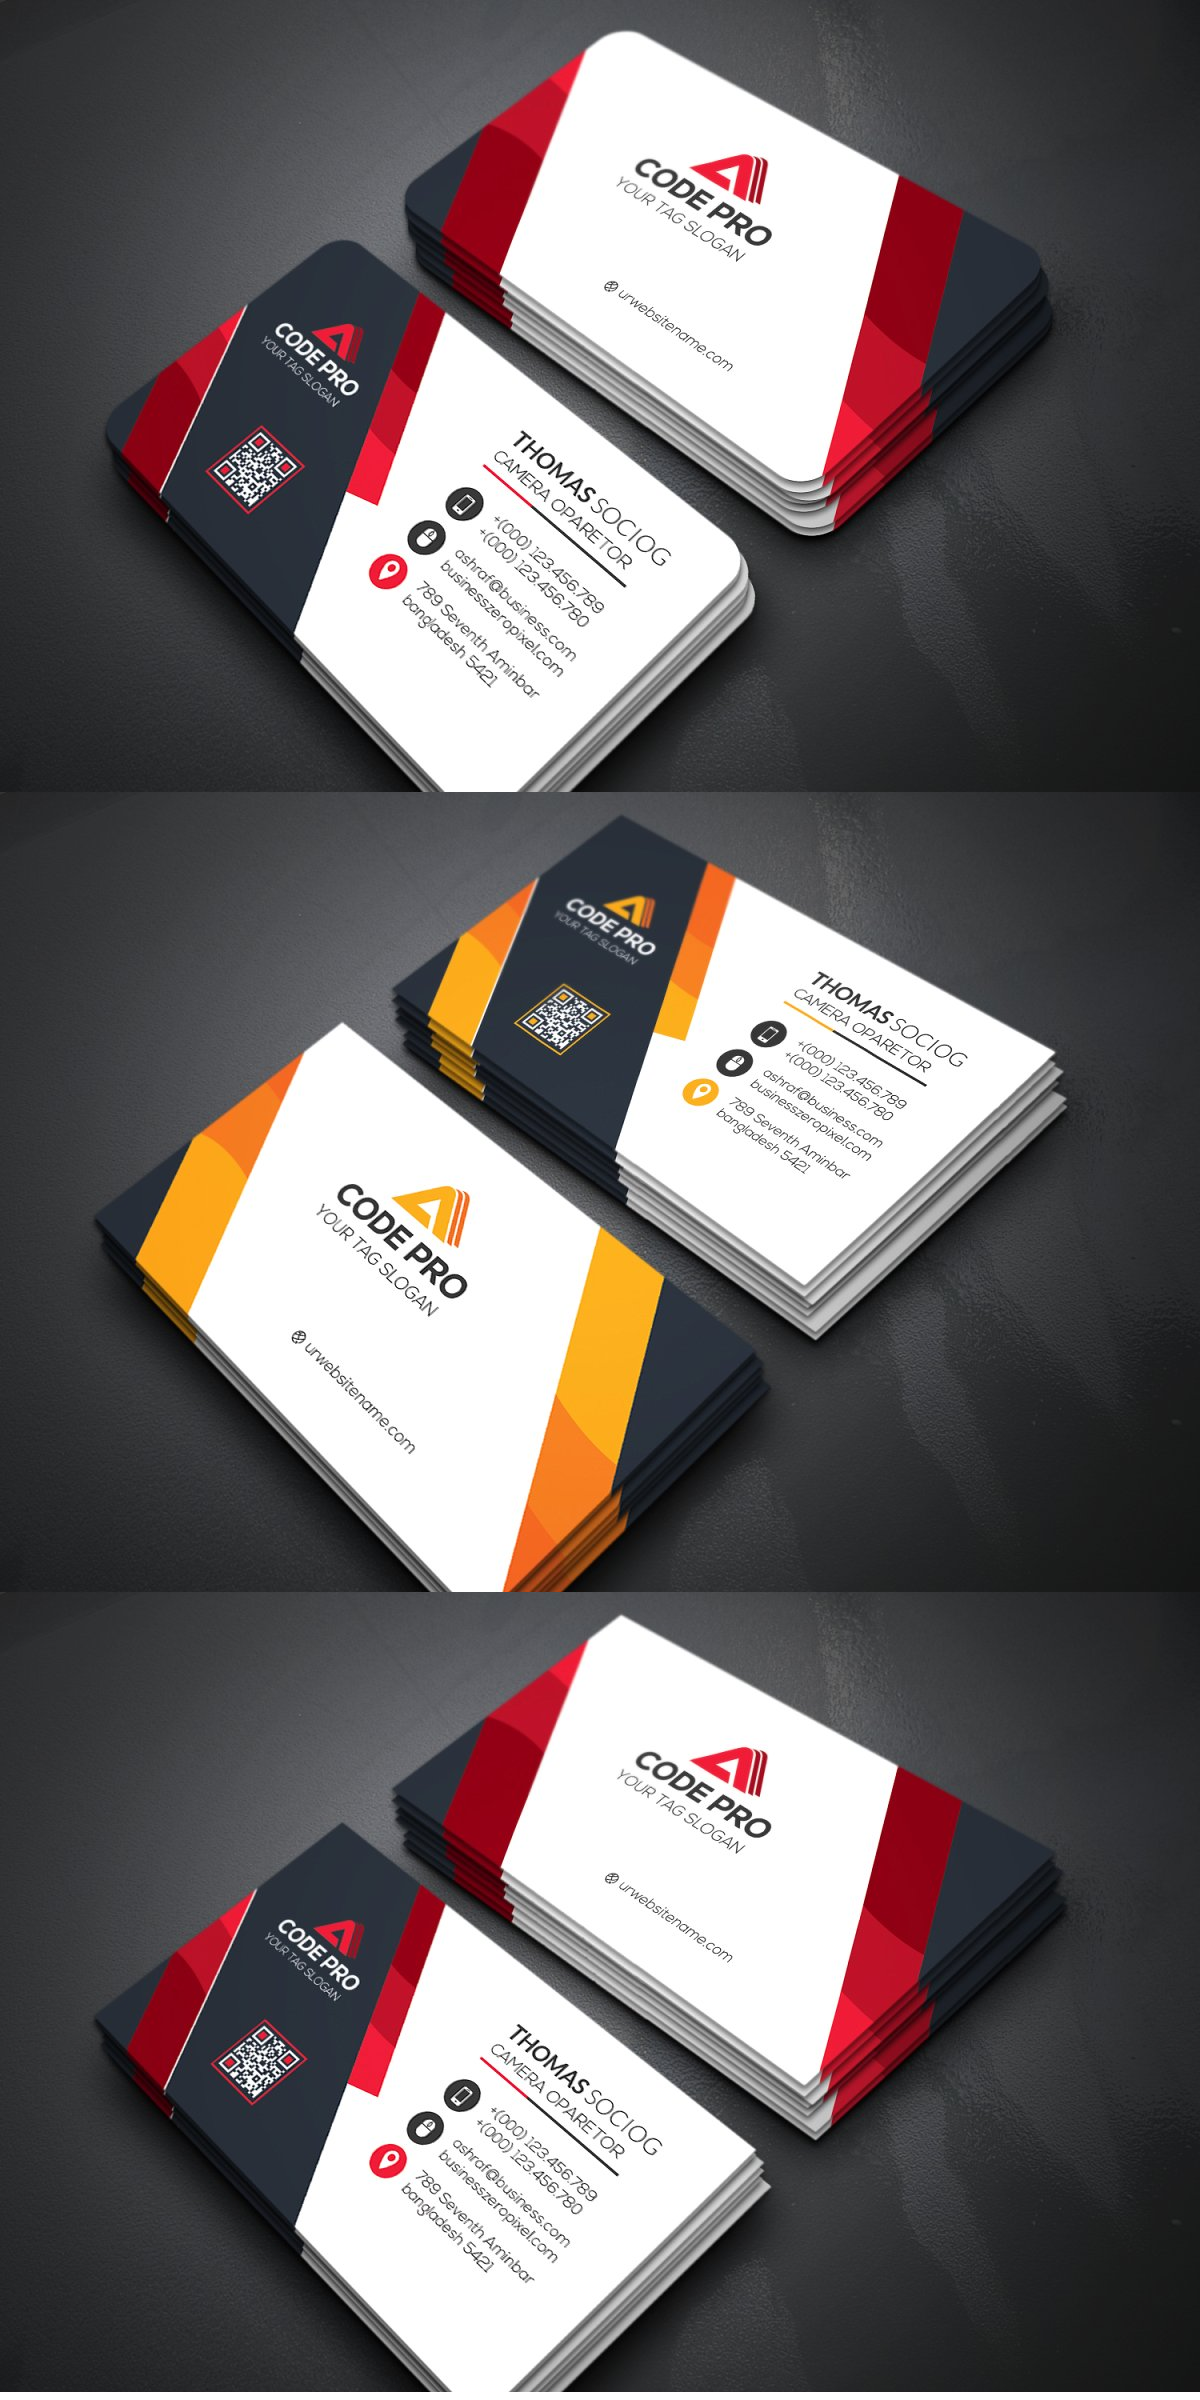 Business Cards Business Card Template Personal Business Cards Card Template